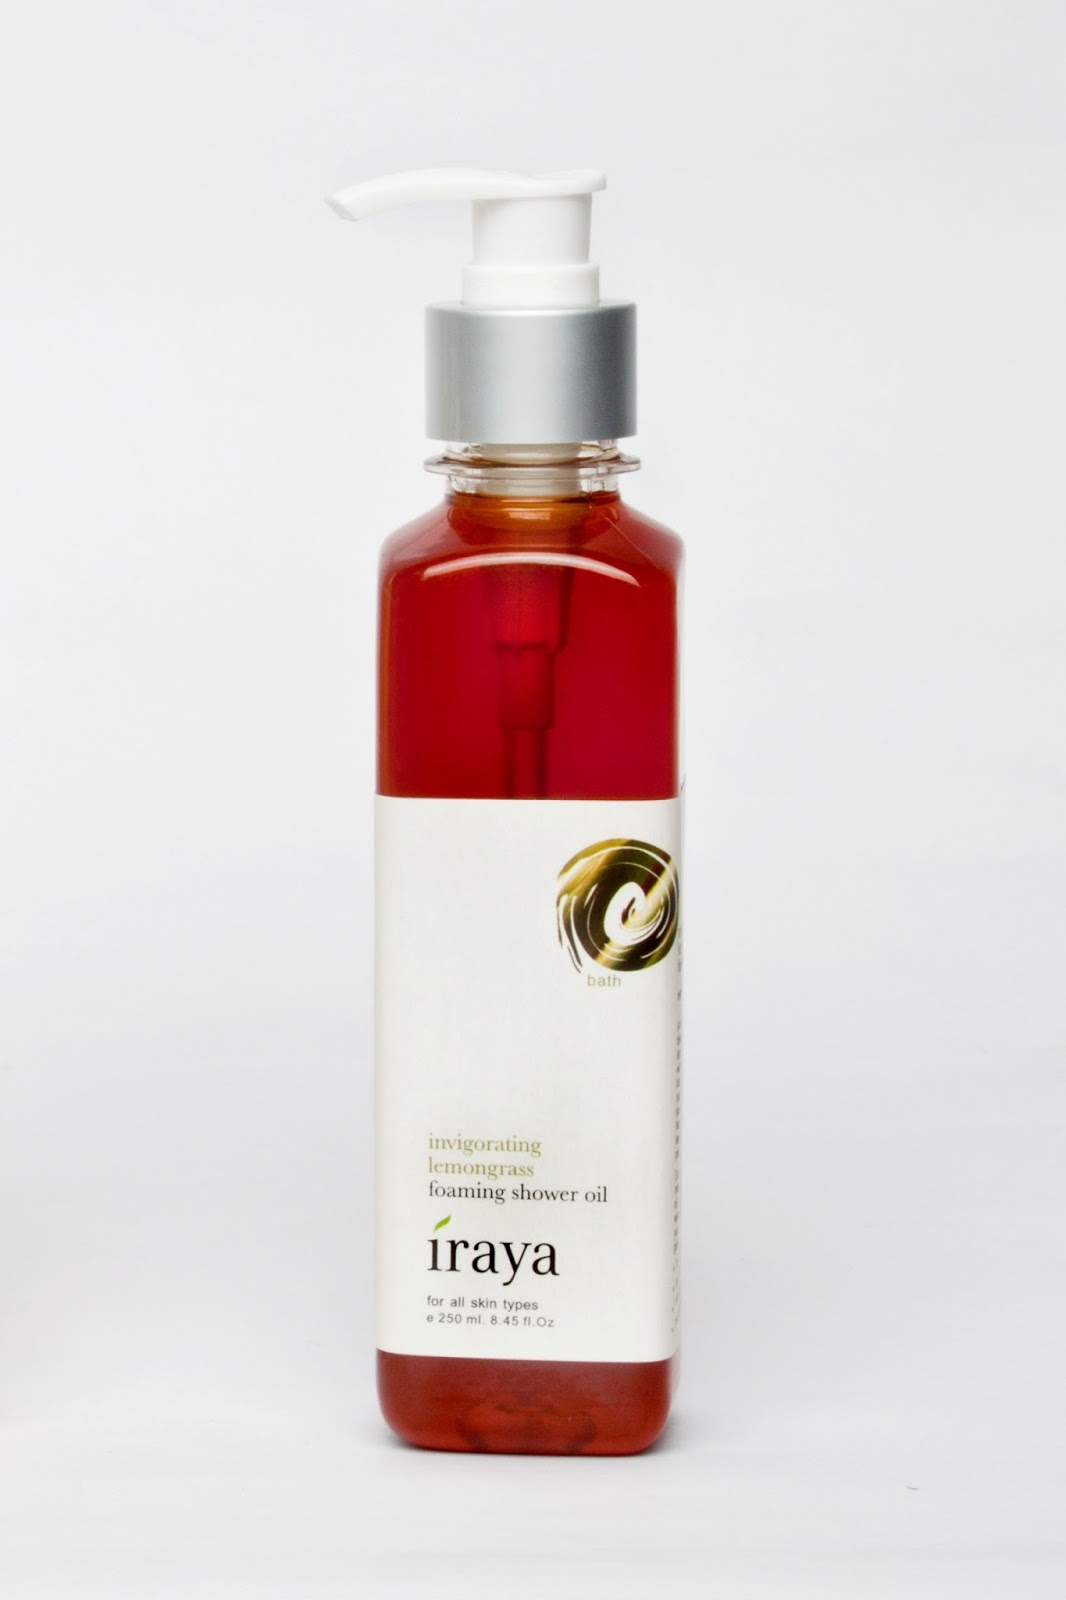 Iraya Invigorating Lemongrass Foaming Shower Oil